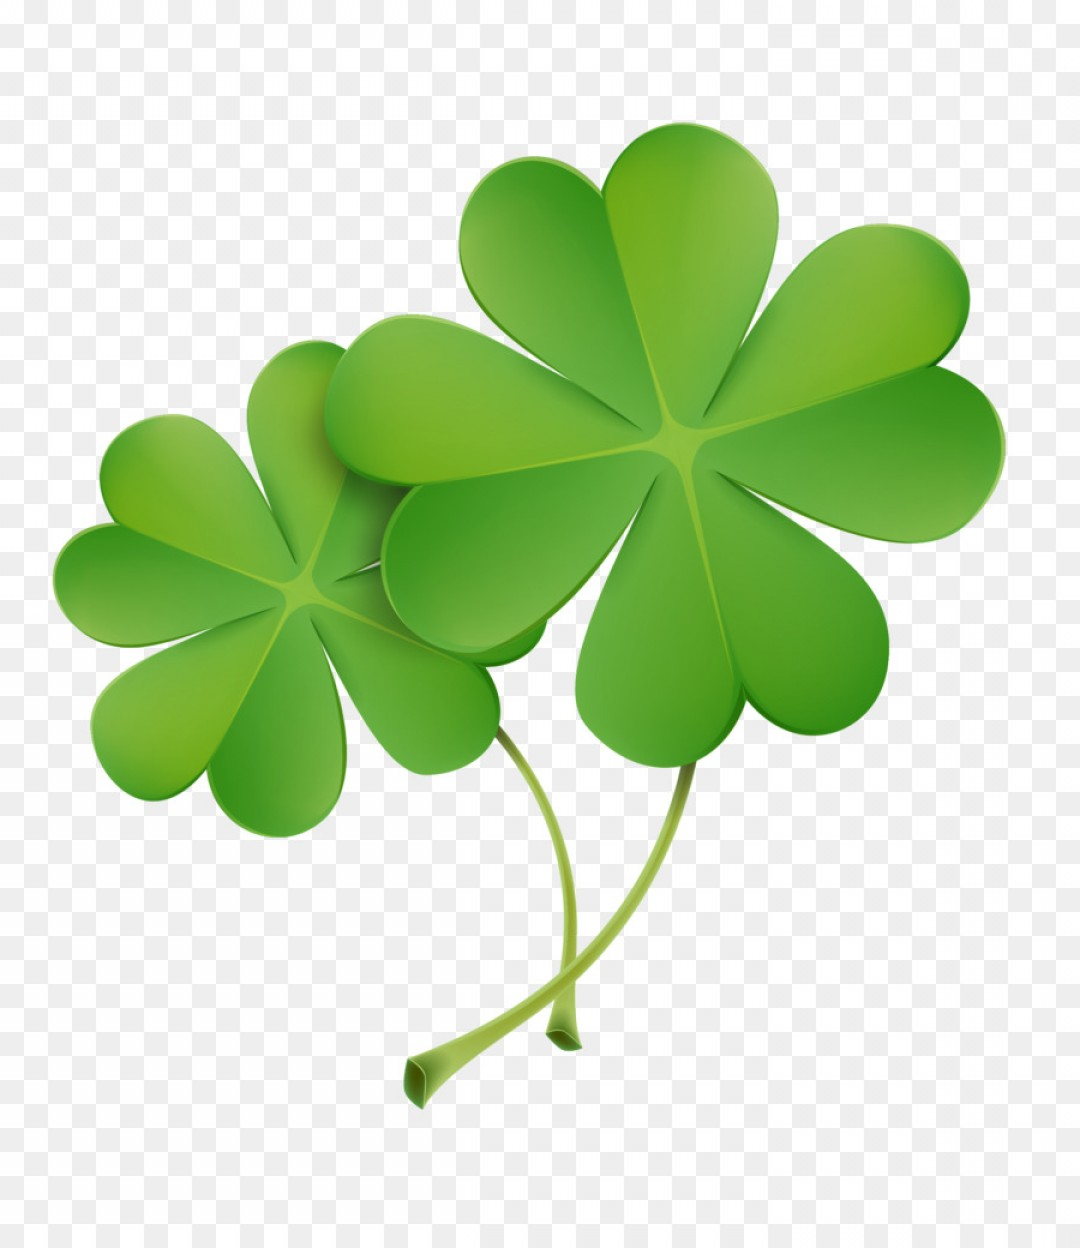 1080x1248 Png Four Leaf Clover Icon Green Clover Vector Arenawp